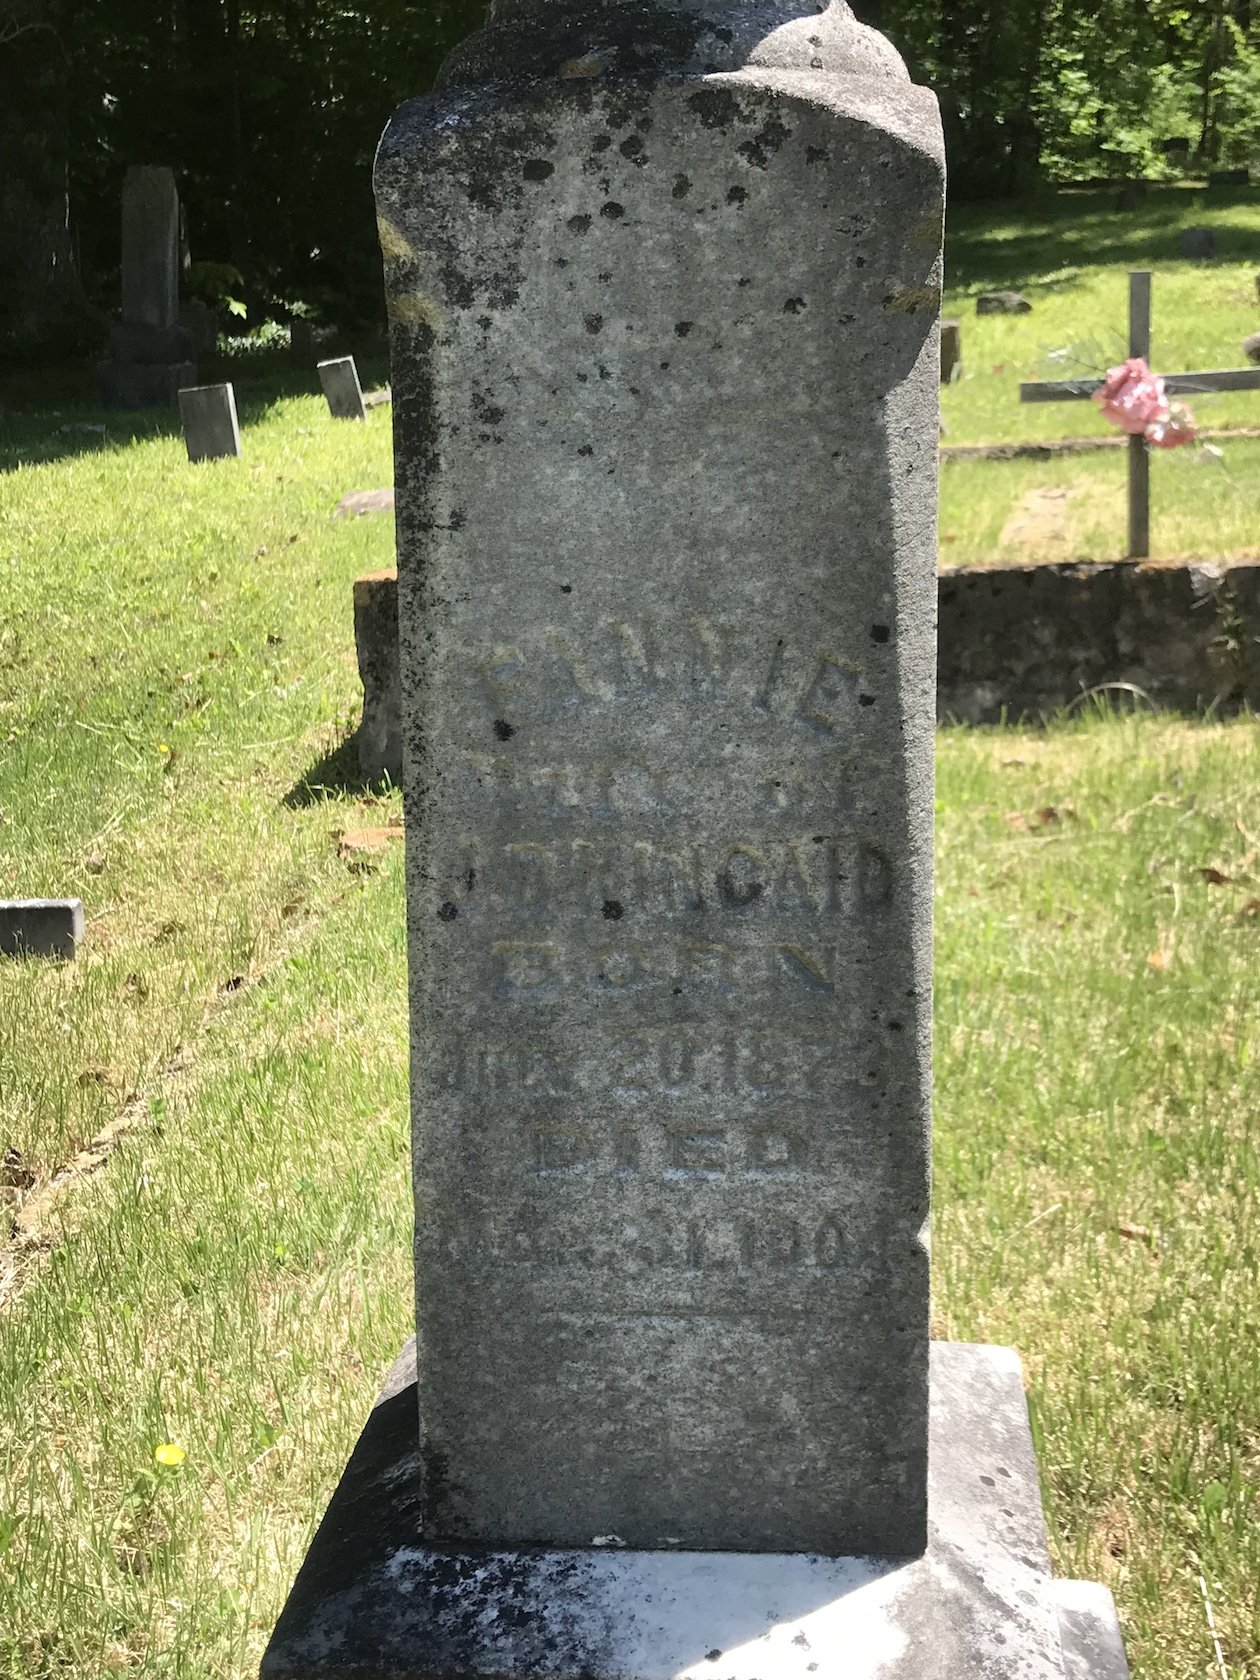 The grave of Fannie Kincaid, the woman pictured in the previous image.